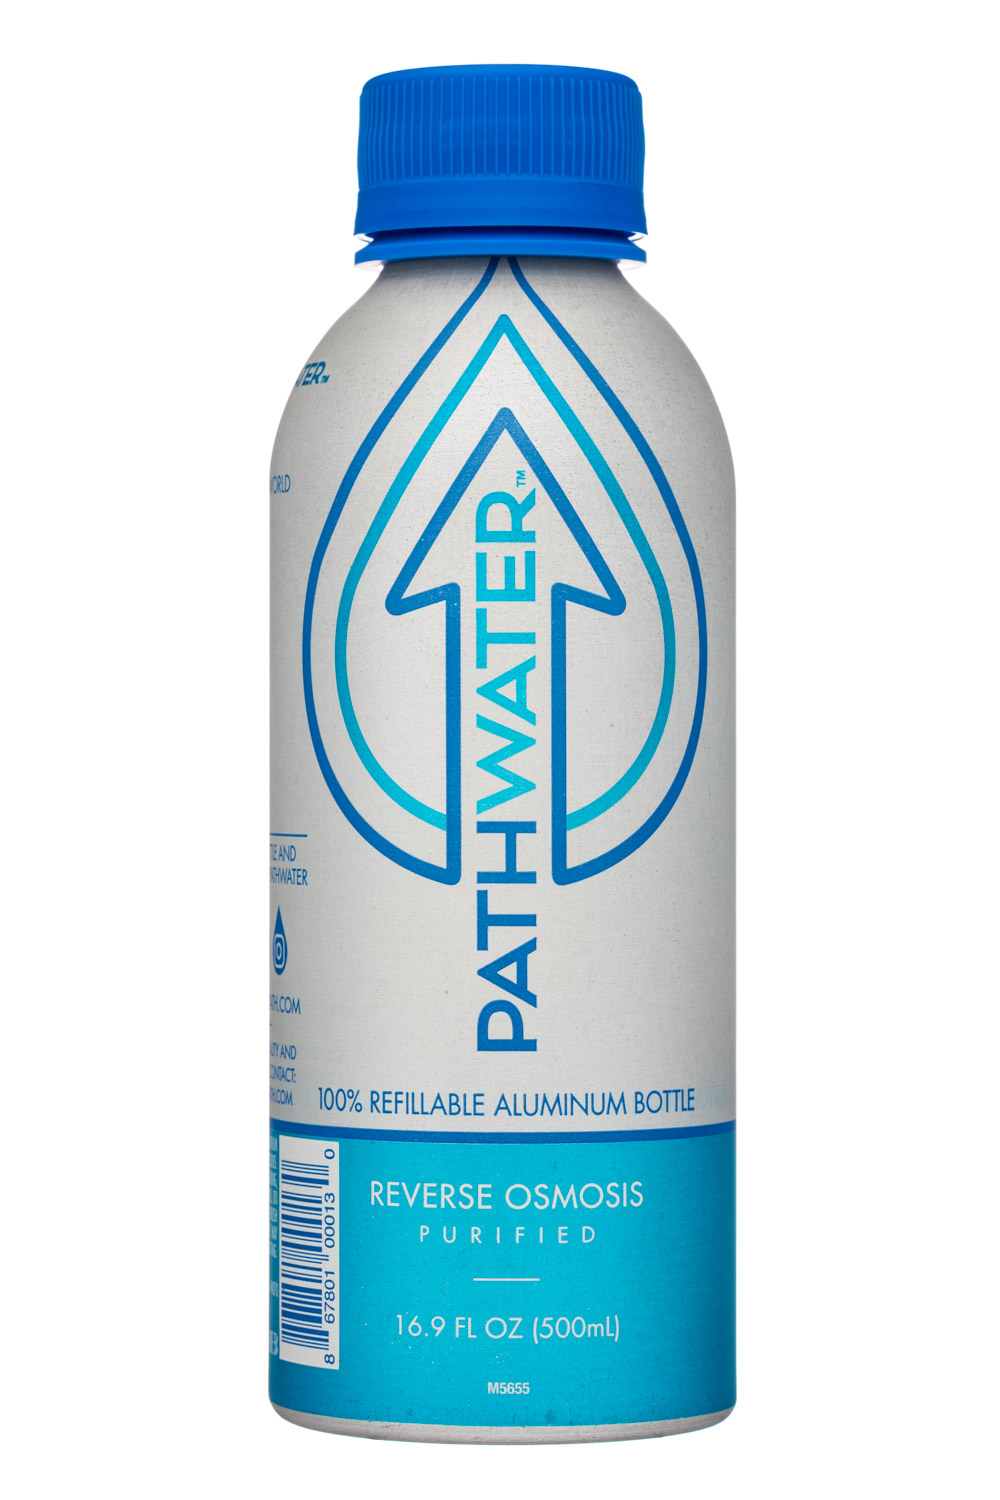 Reverse Osmosis Purified (17oz)